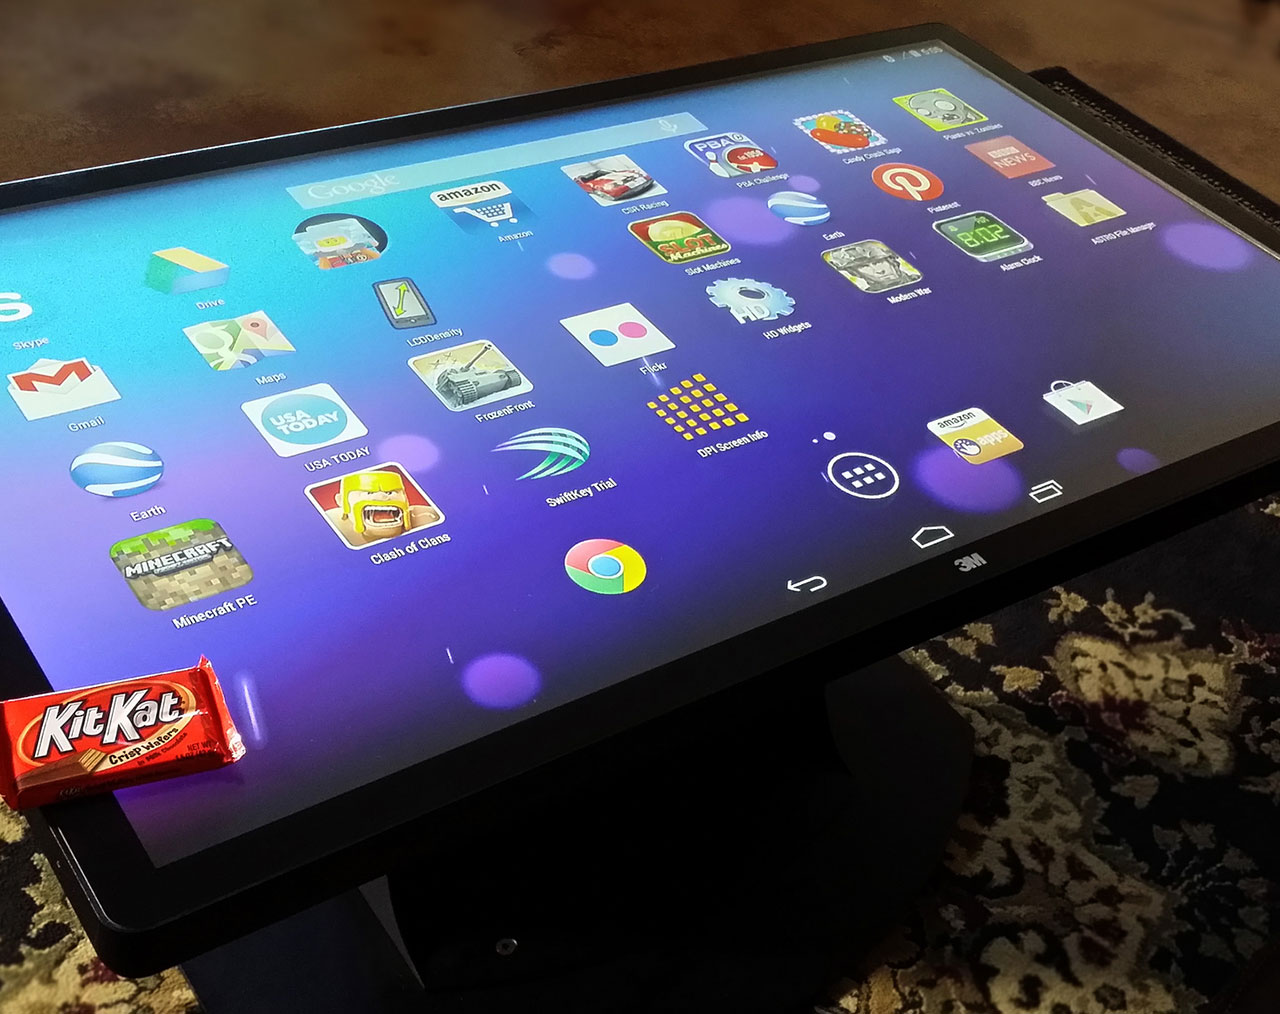 Sweet Deal Android KitKat OS On An Ideum Multitouch Coffee Table - Android coffee table